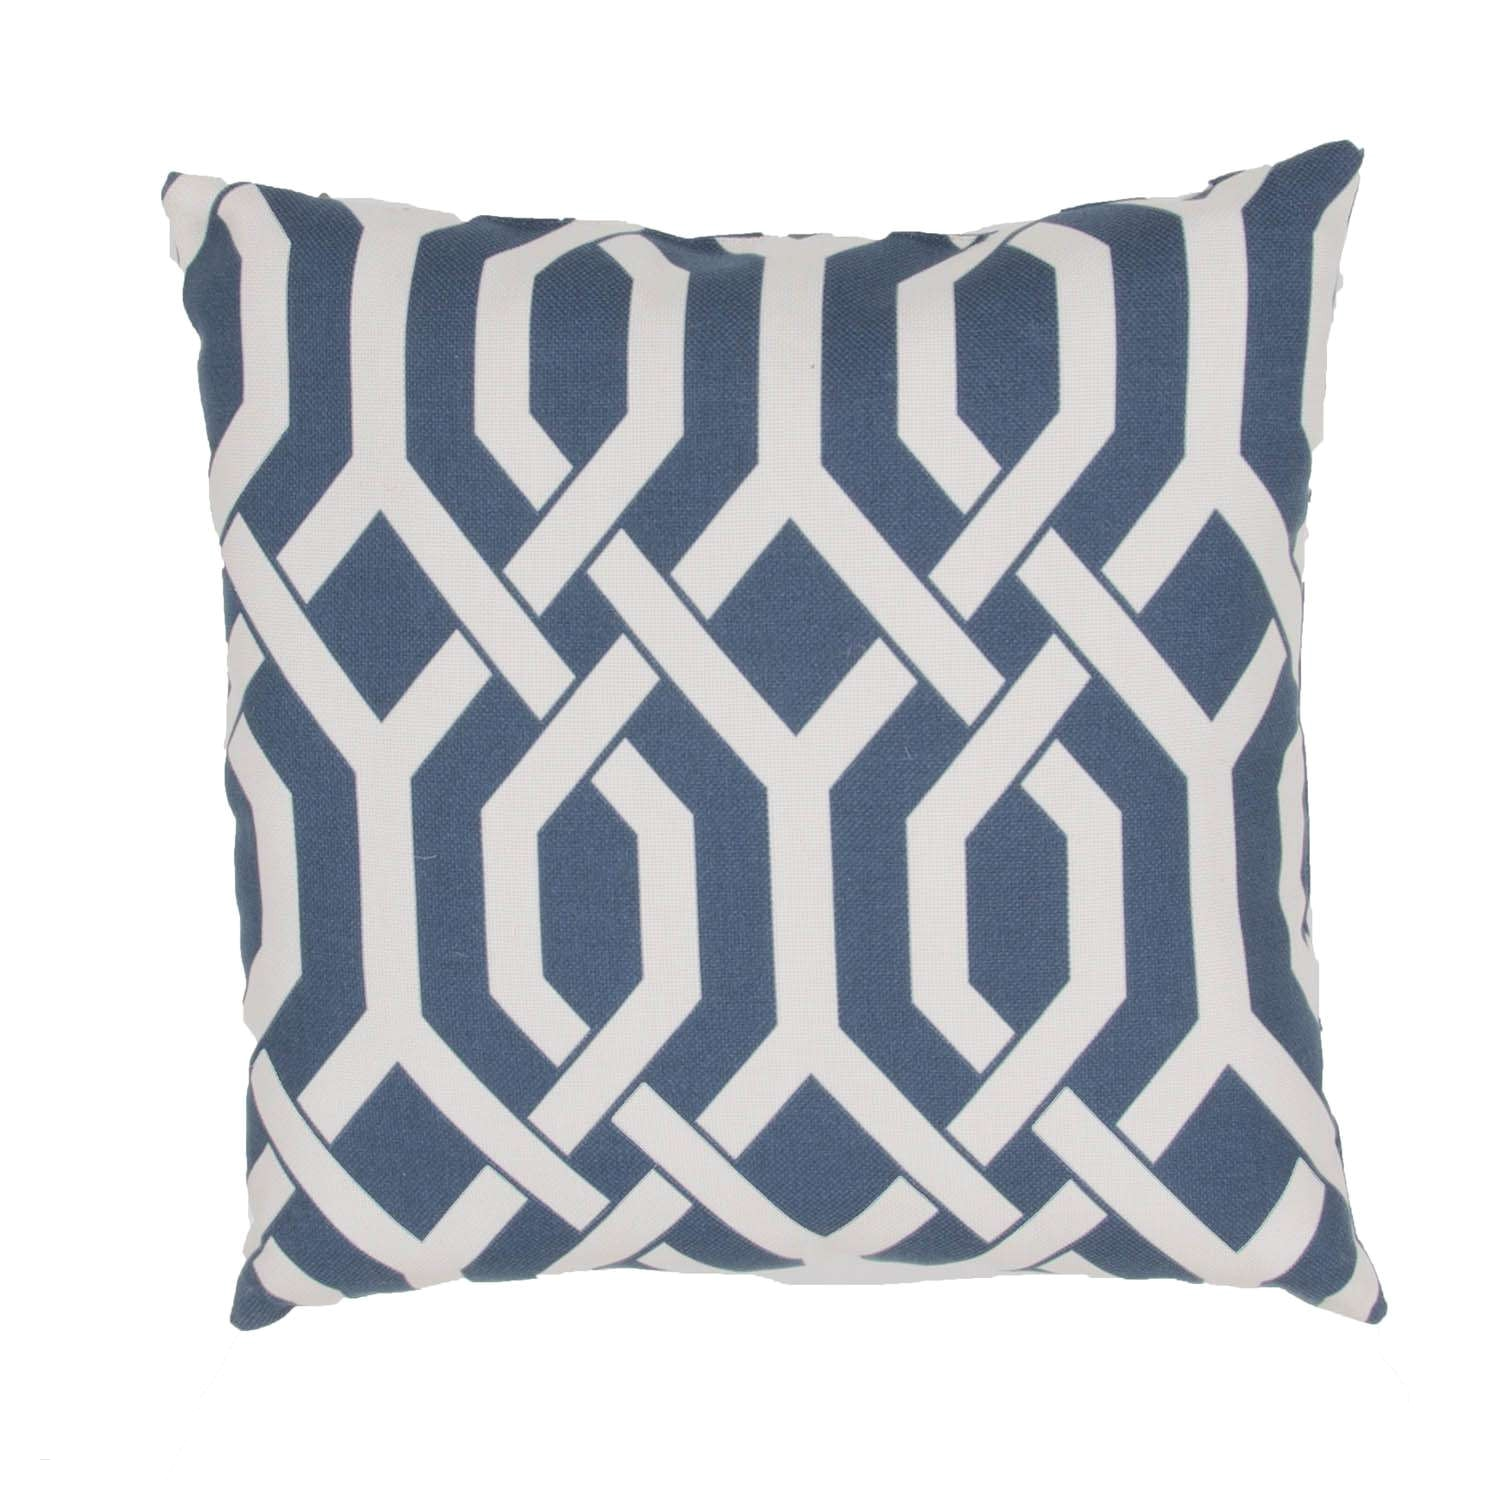 world market outdoor cushions inspirational patio throw pillows new od slick navy pillow scheme blue outdoor